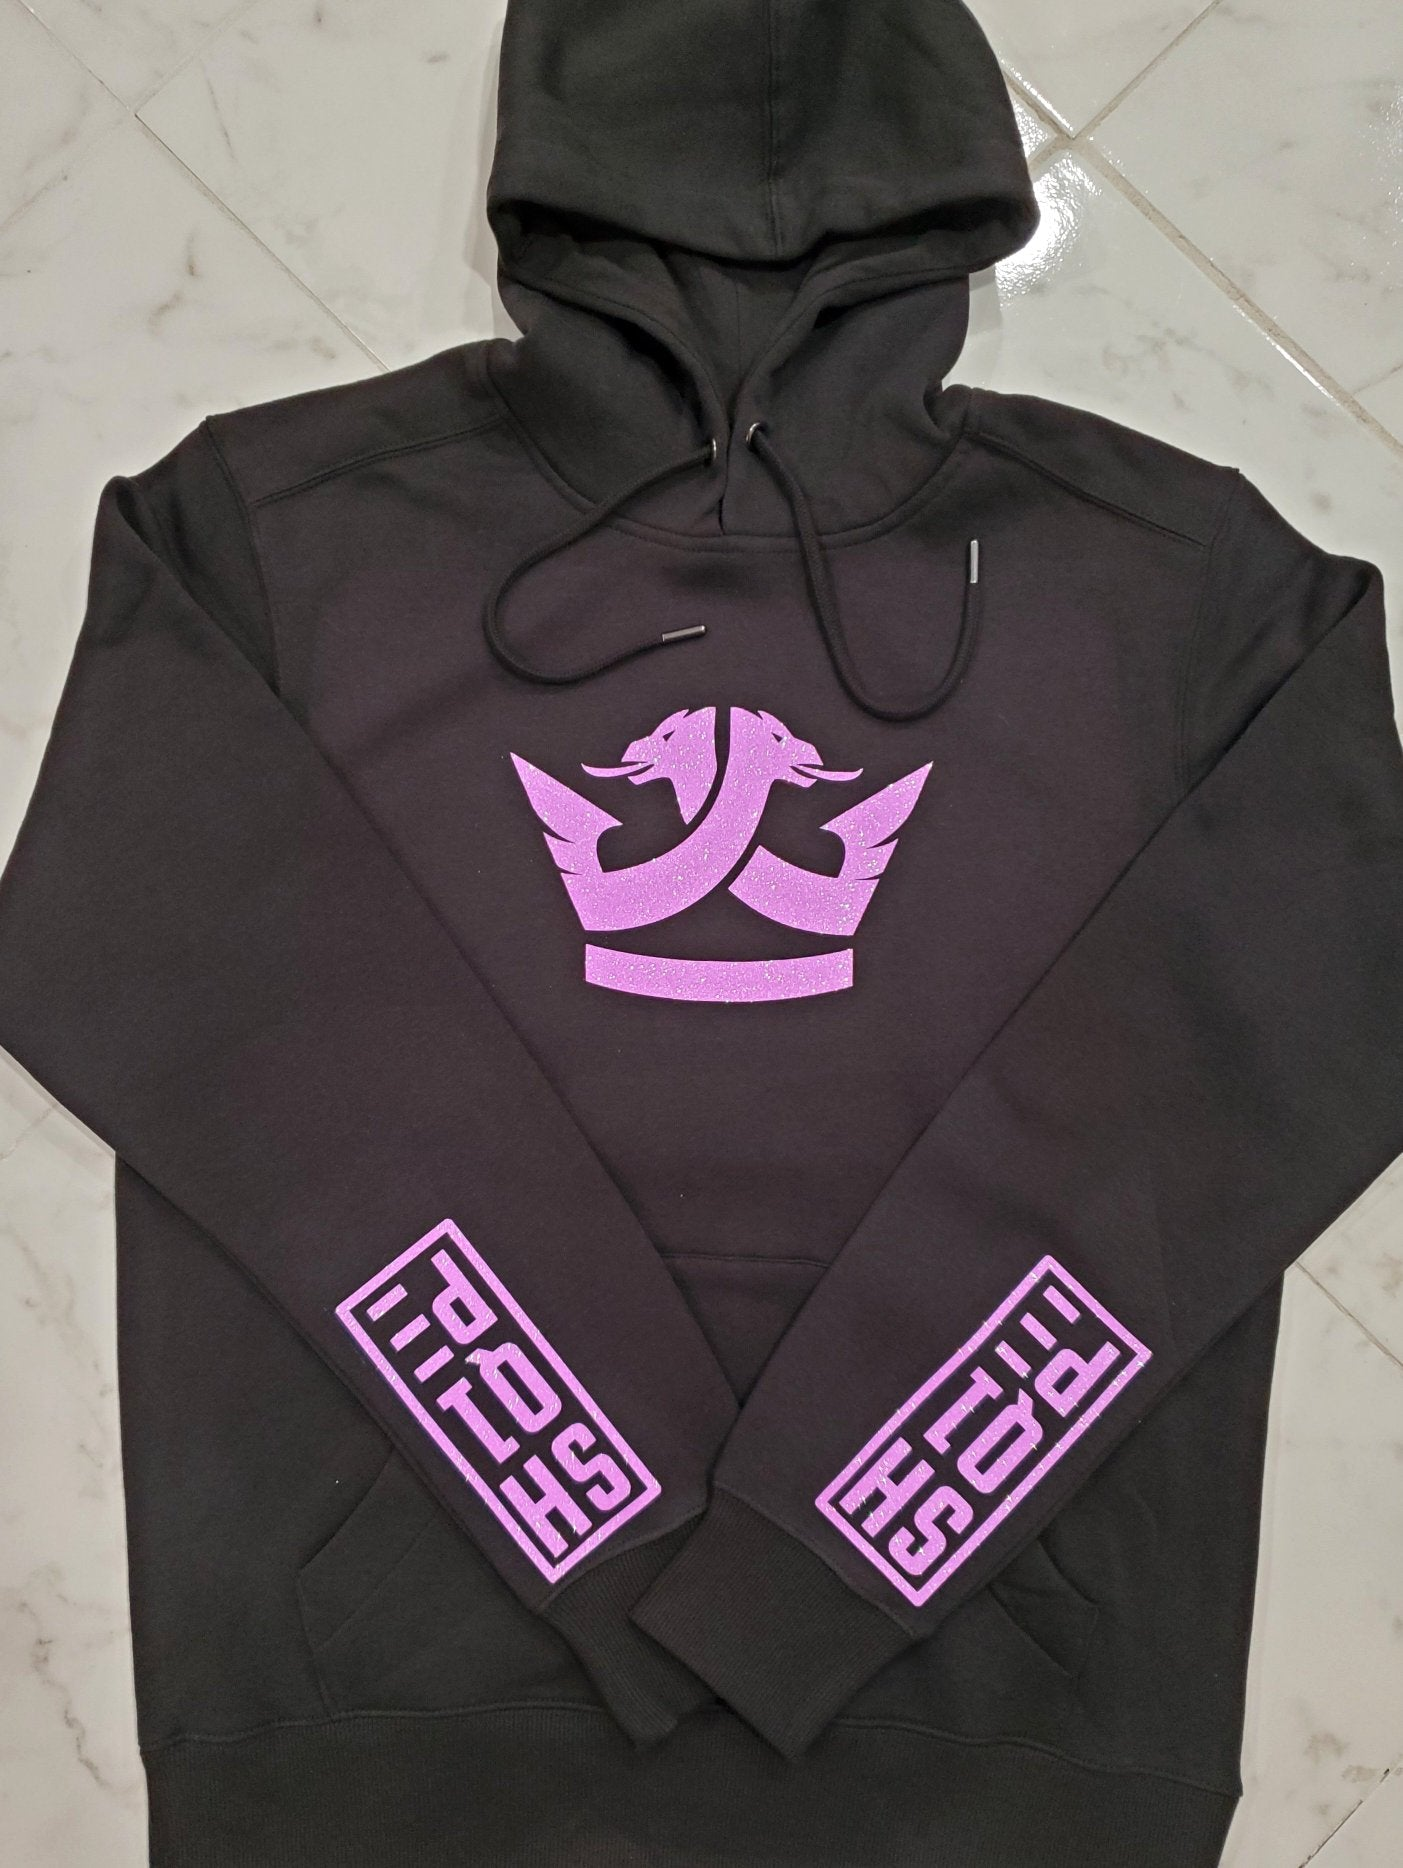 Limited Edition Shq1pe Hoodies- Jet Black (Hot Pink Sparkle)